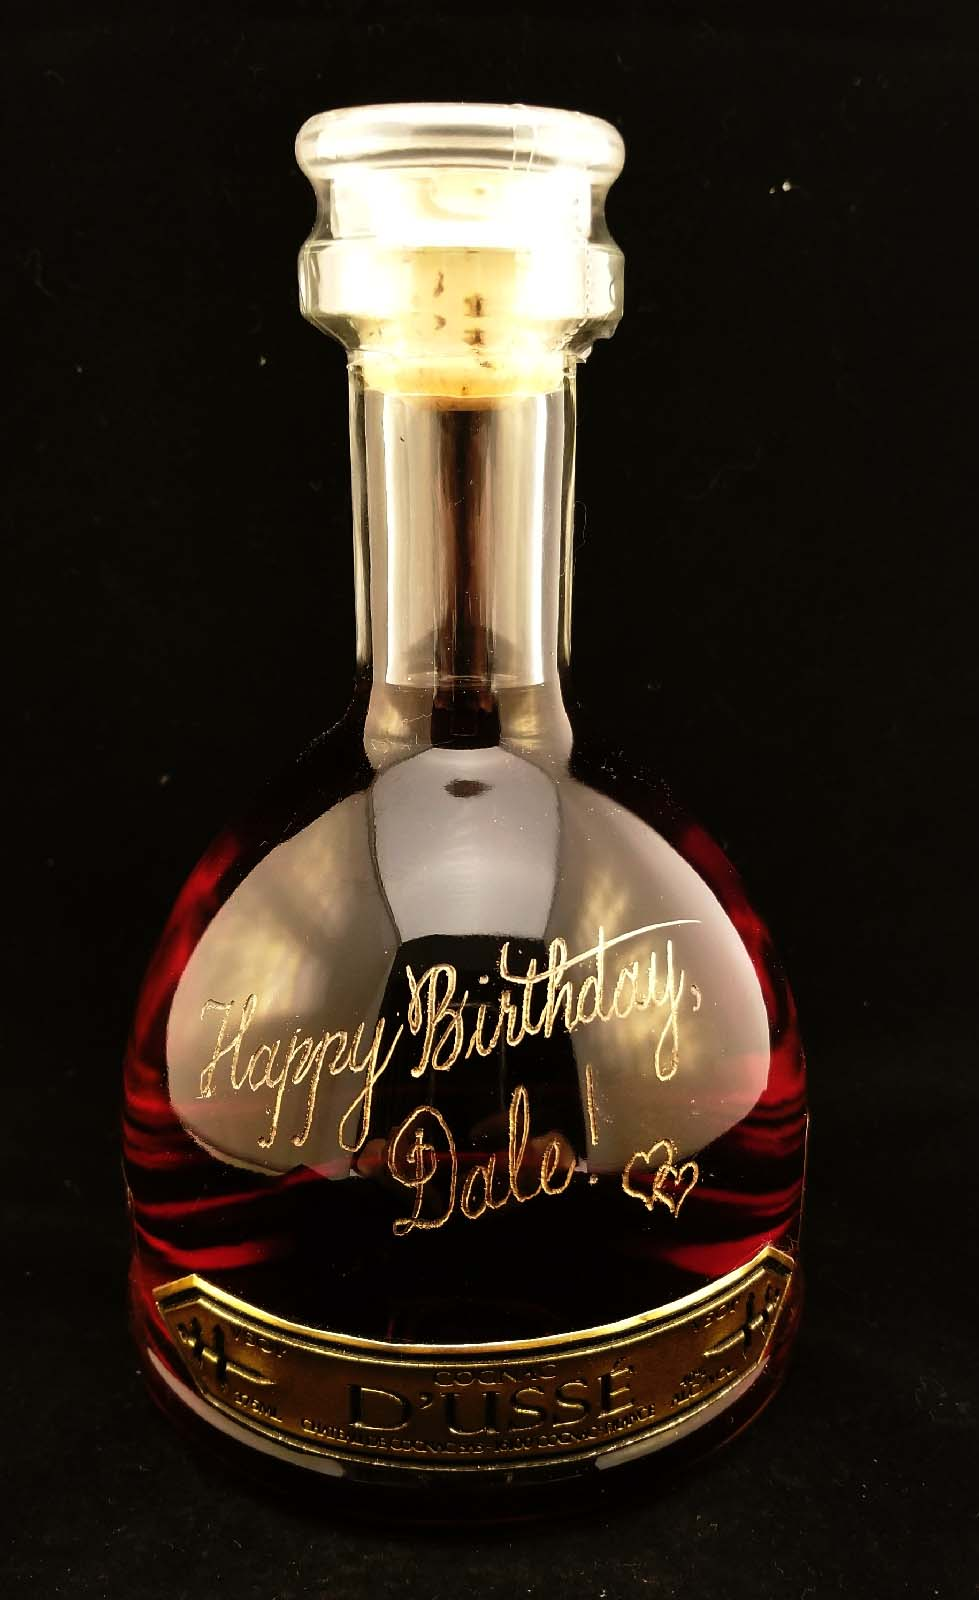 Liquor Bottle Engraver Makes A Cognac Birthday Gift Extra Special